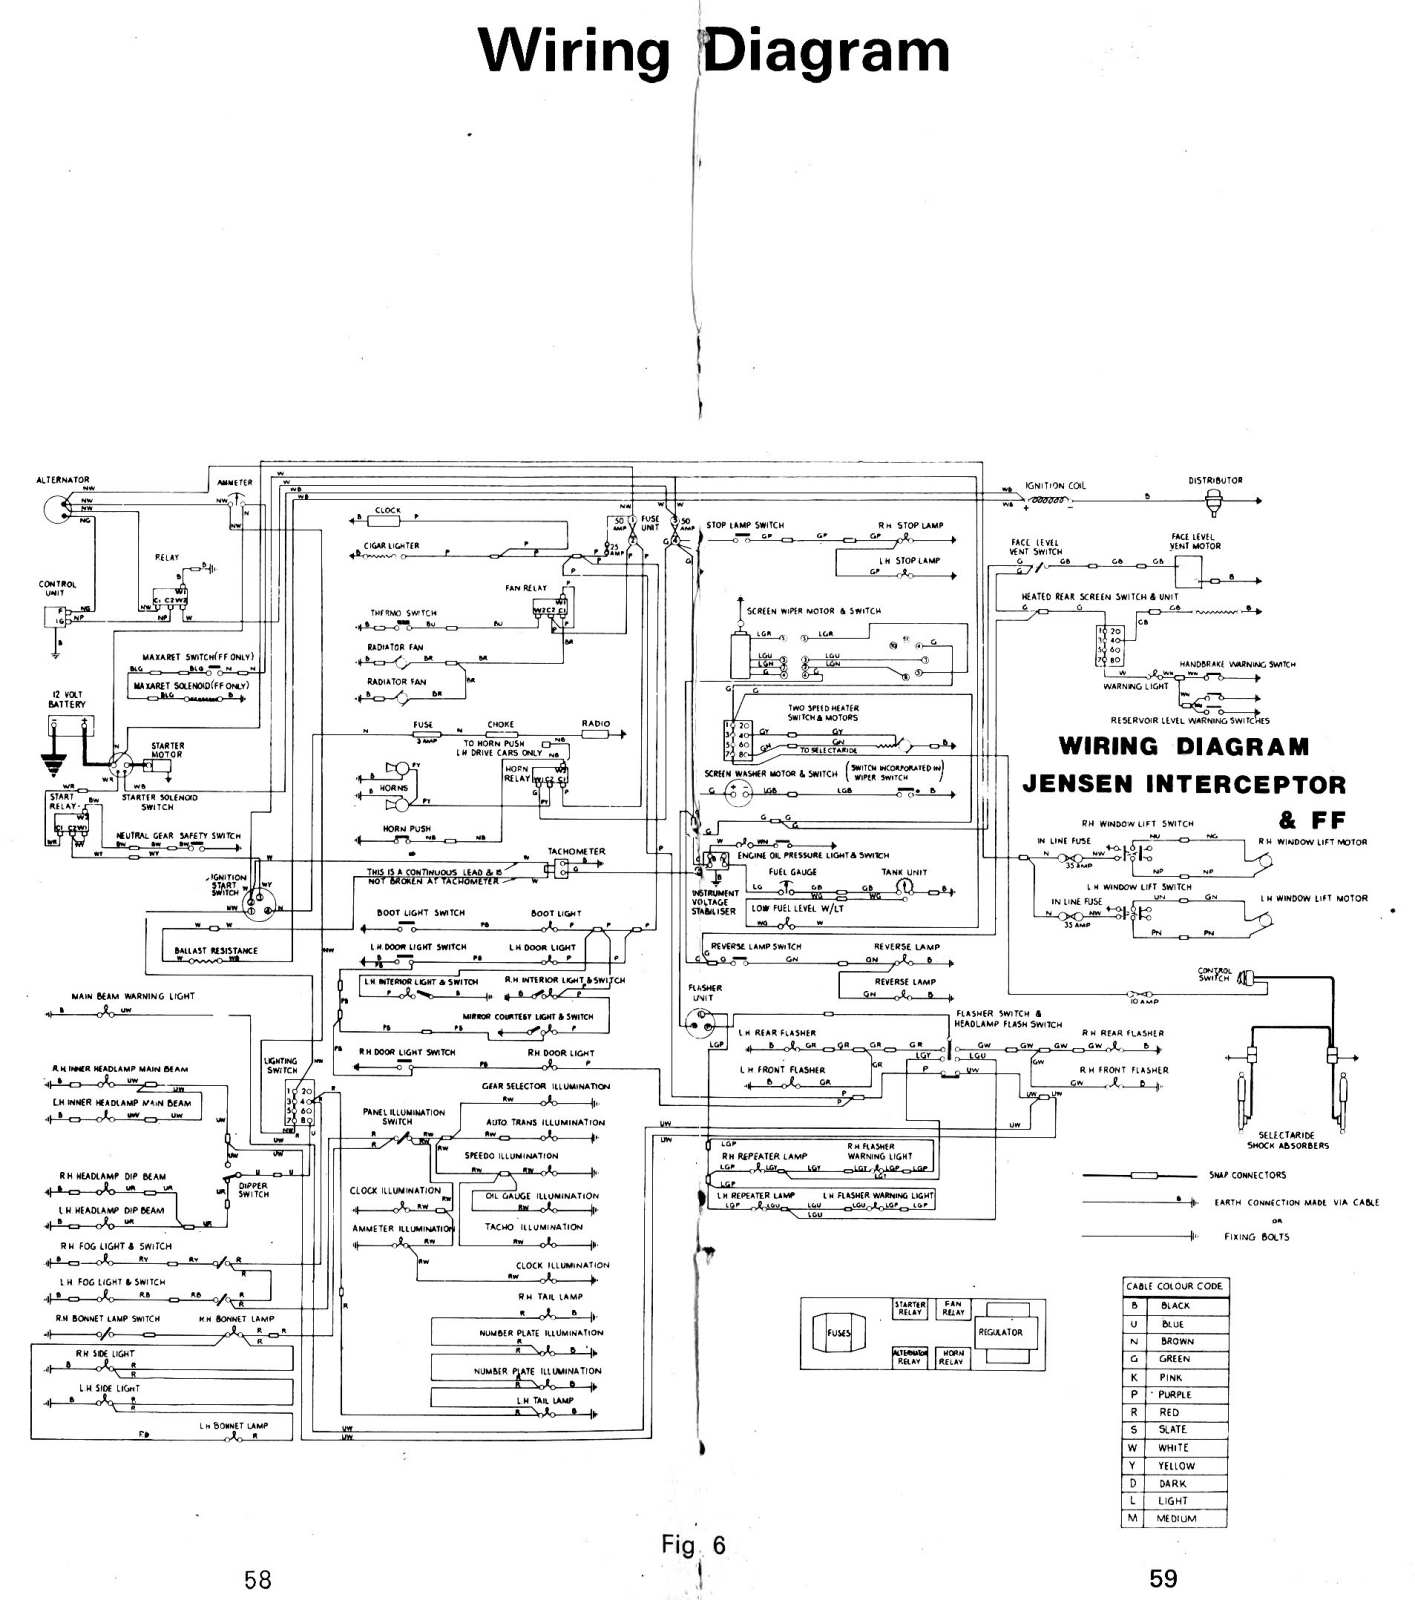 Jensen Wiring Harness Diagram Books Of For Silverado Will Be A Thing U2022 Rh Exploreandmore Co Uk Vm9212